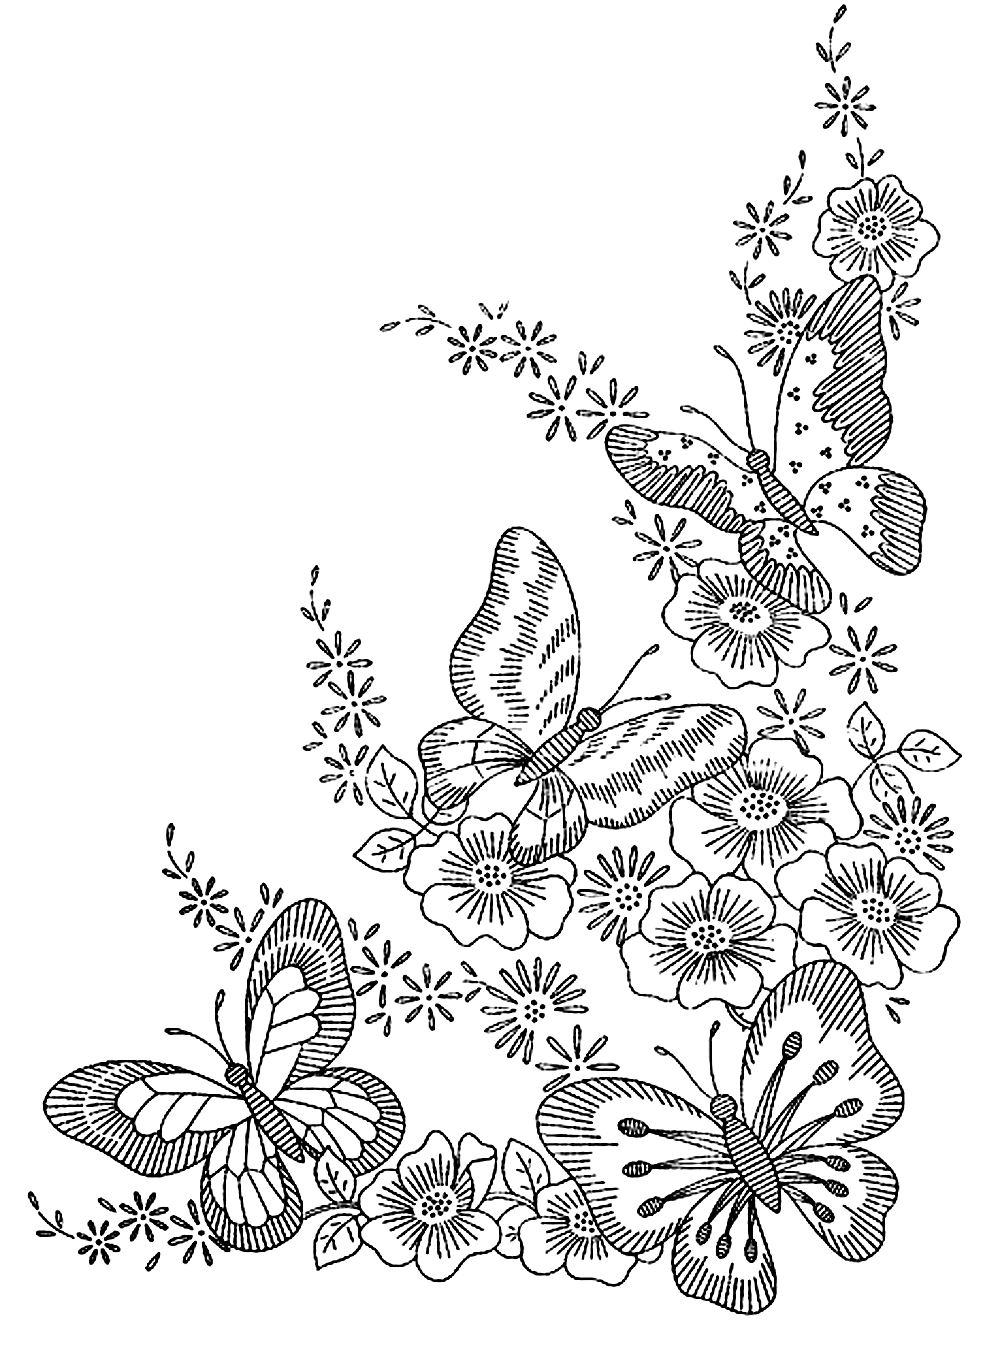 Difficult butterflies   Butterflies & insects - Coloring pages for ...